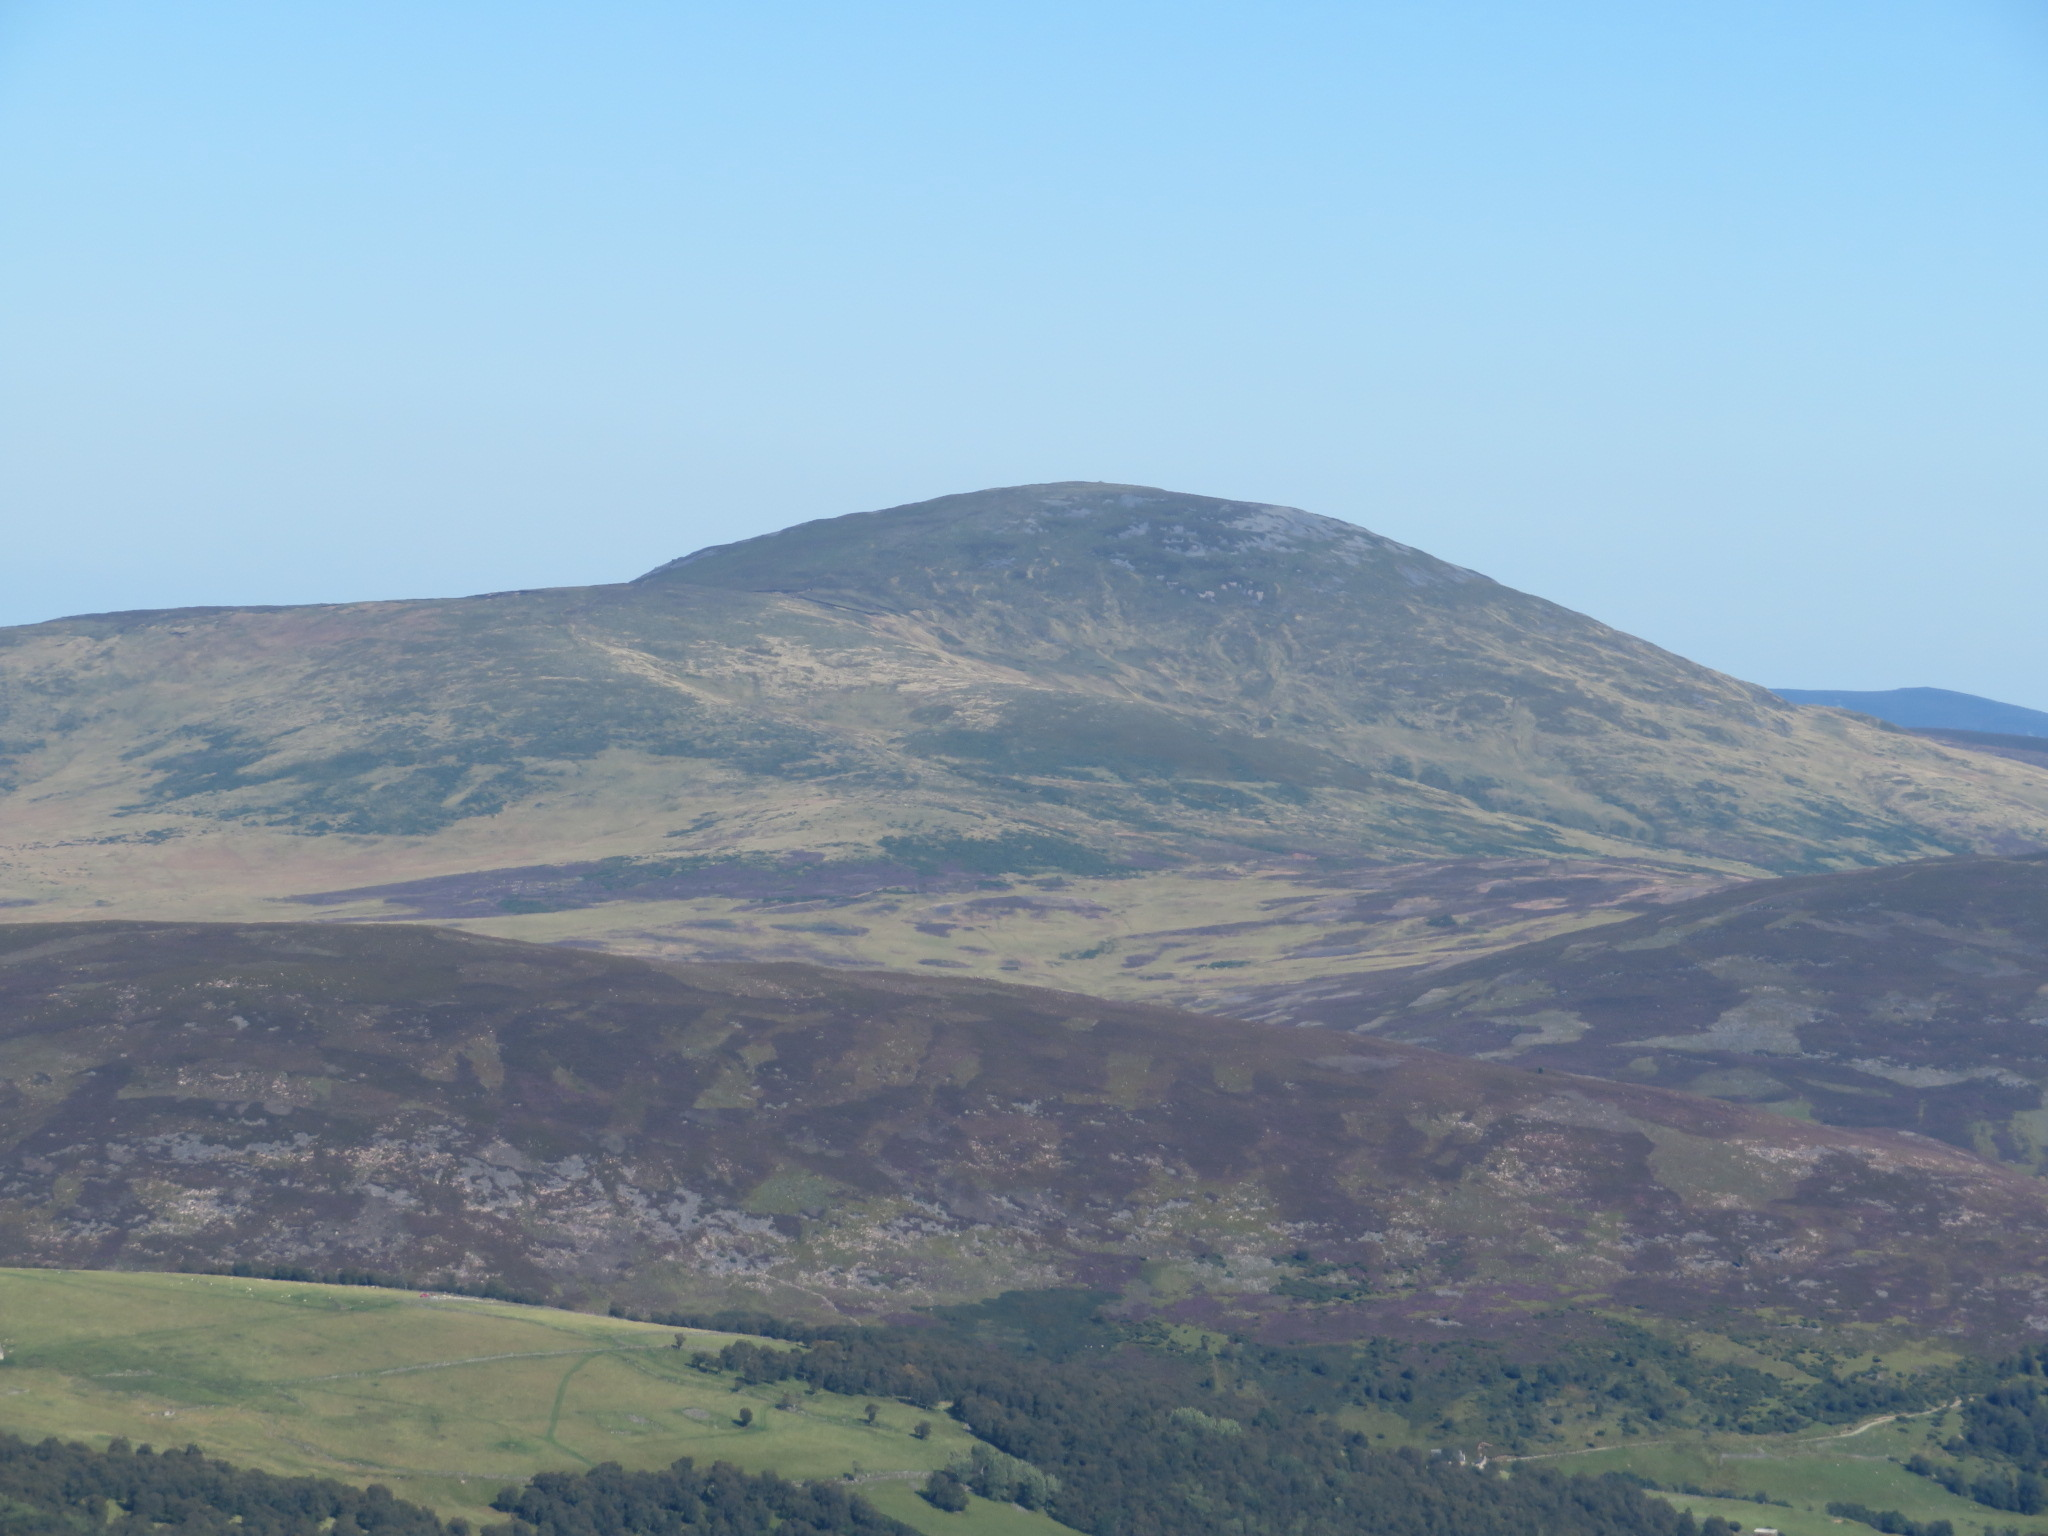 North-east to Morven